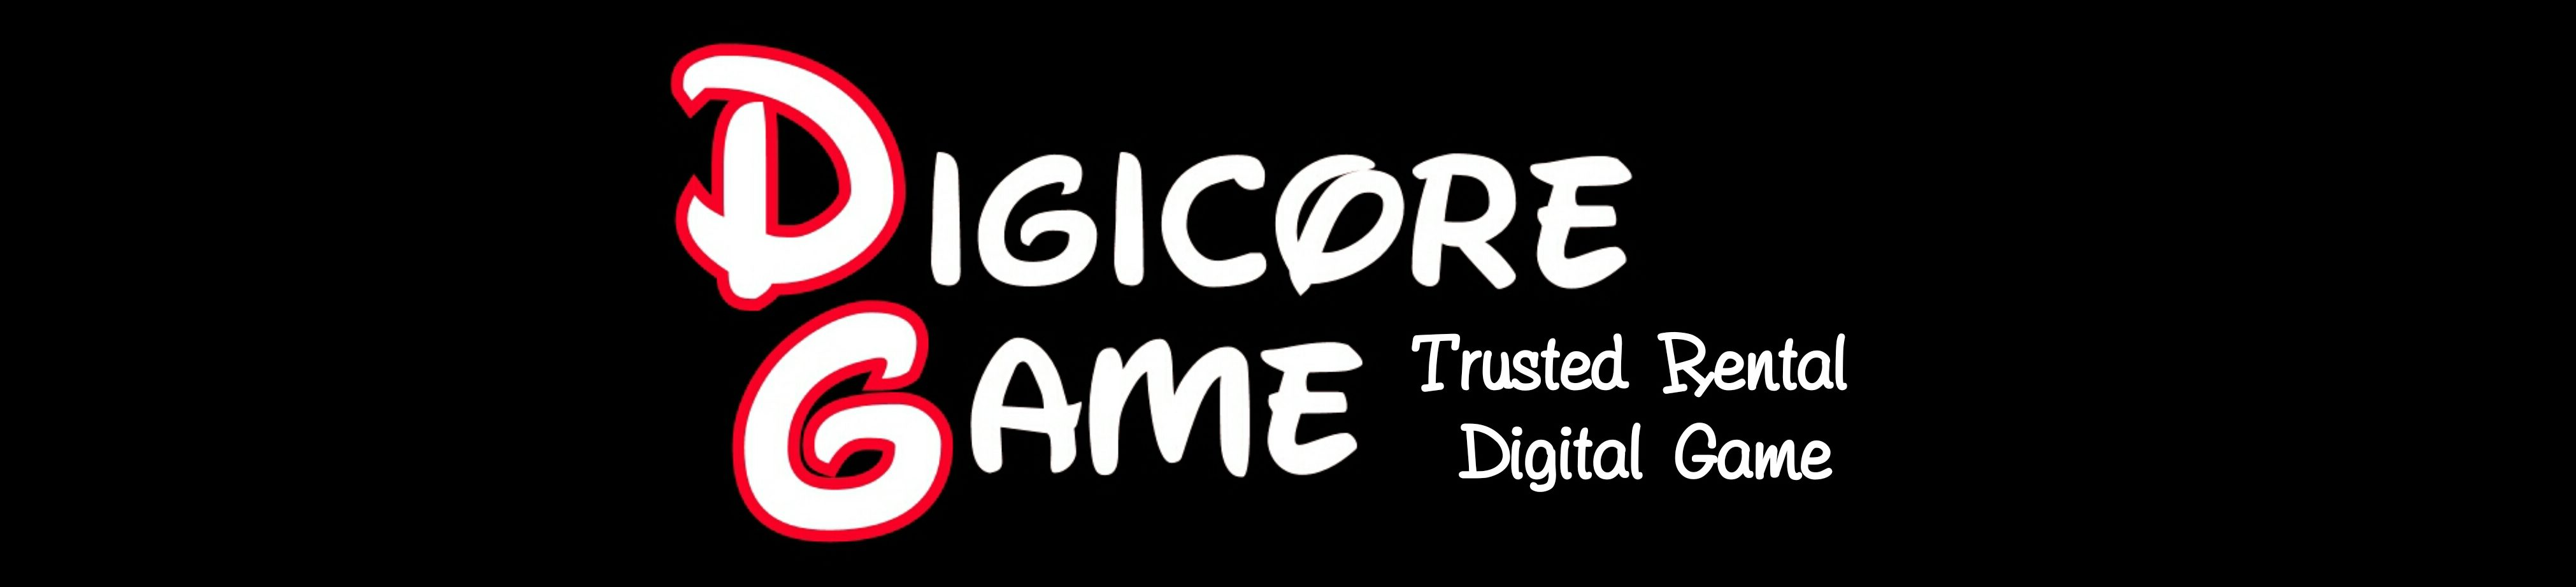 Digicore Game